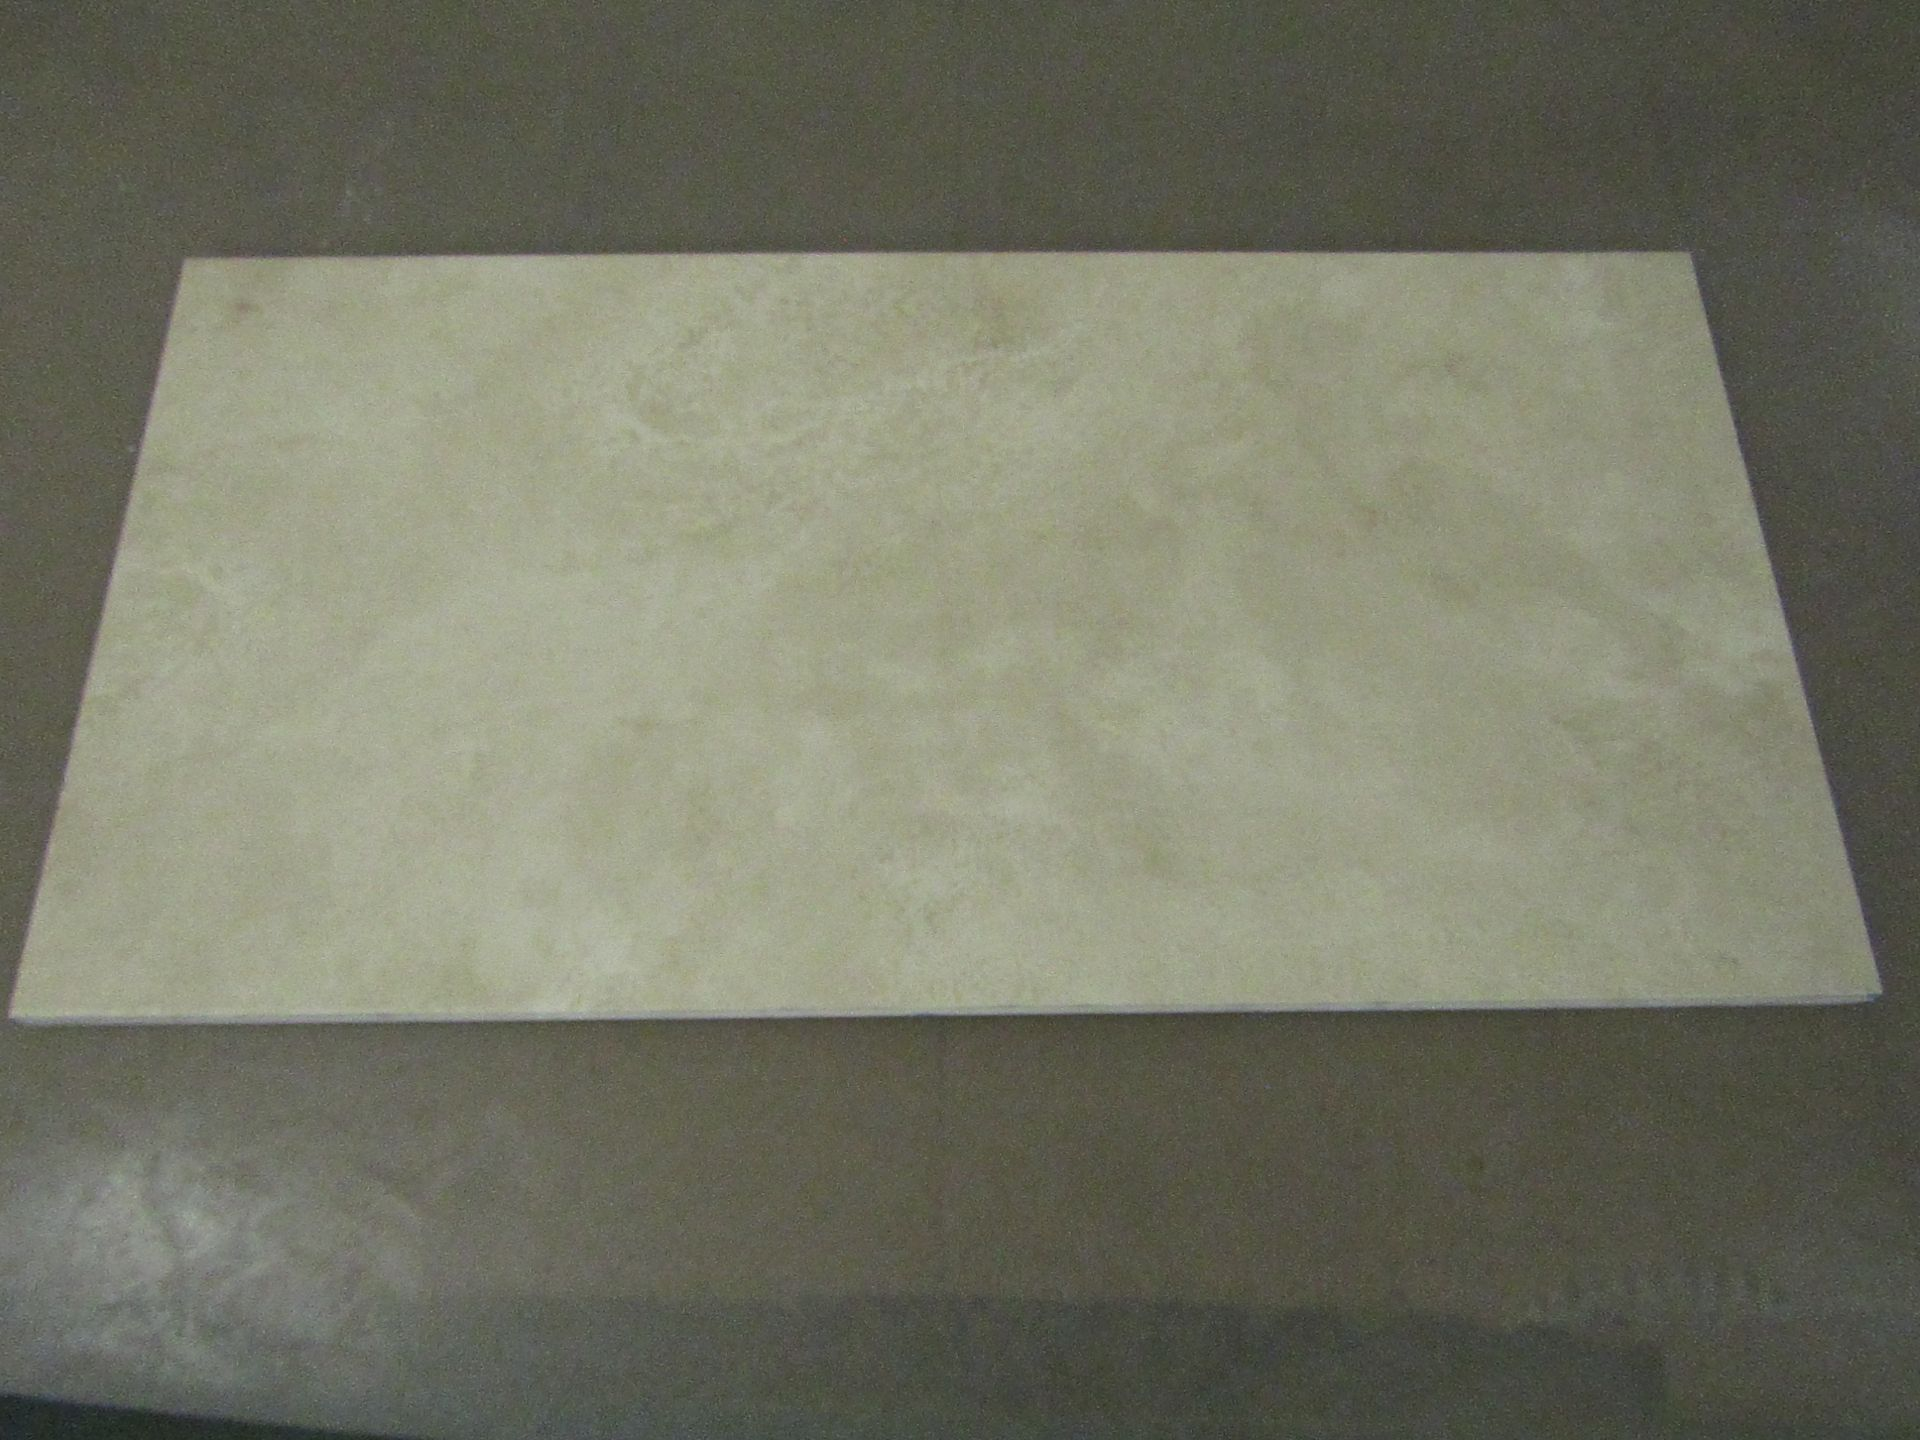 Pallet of 40x Packs of 5 Natural Beauty Sand 300x600 wall and Floor Tiles By Johnsons, New, the